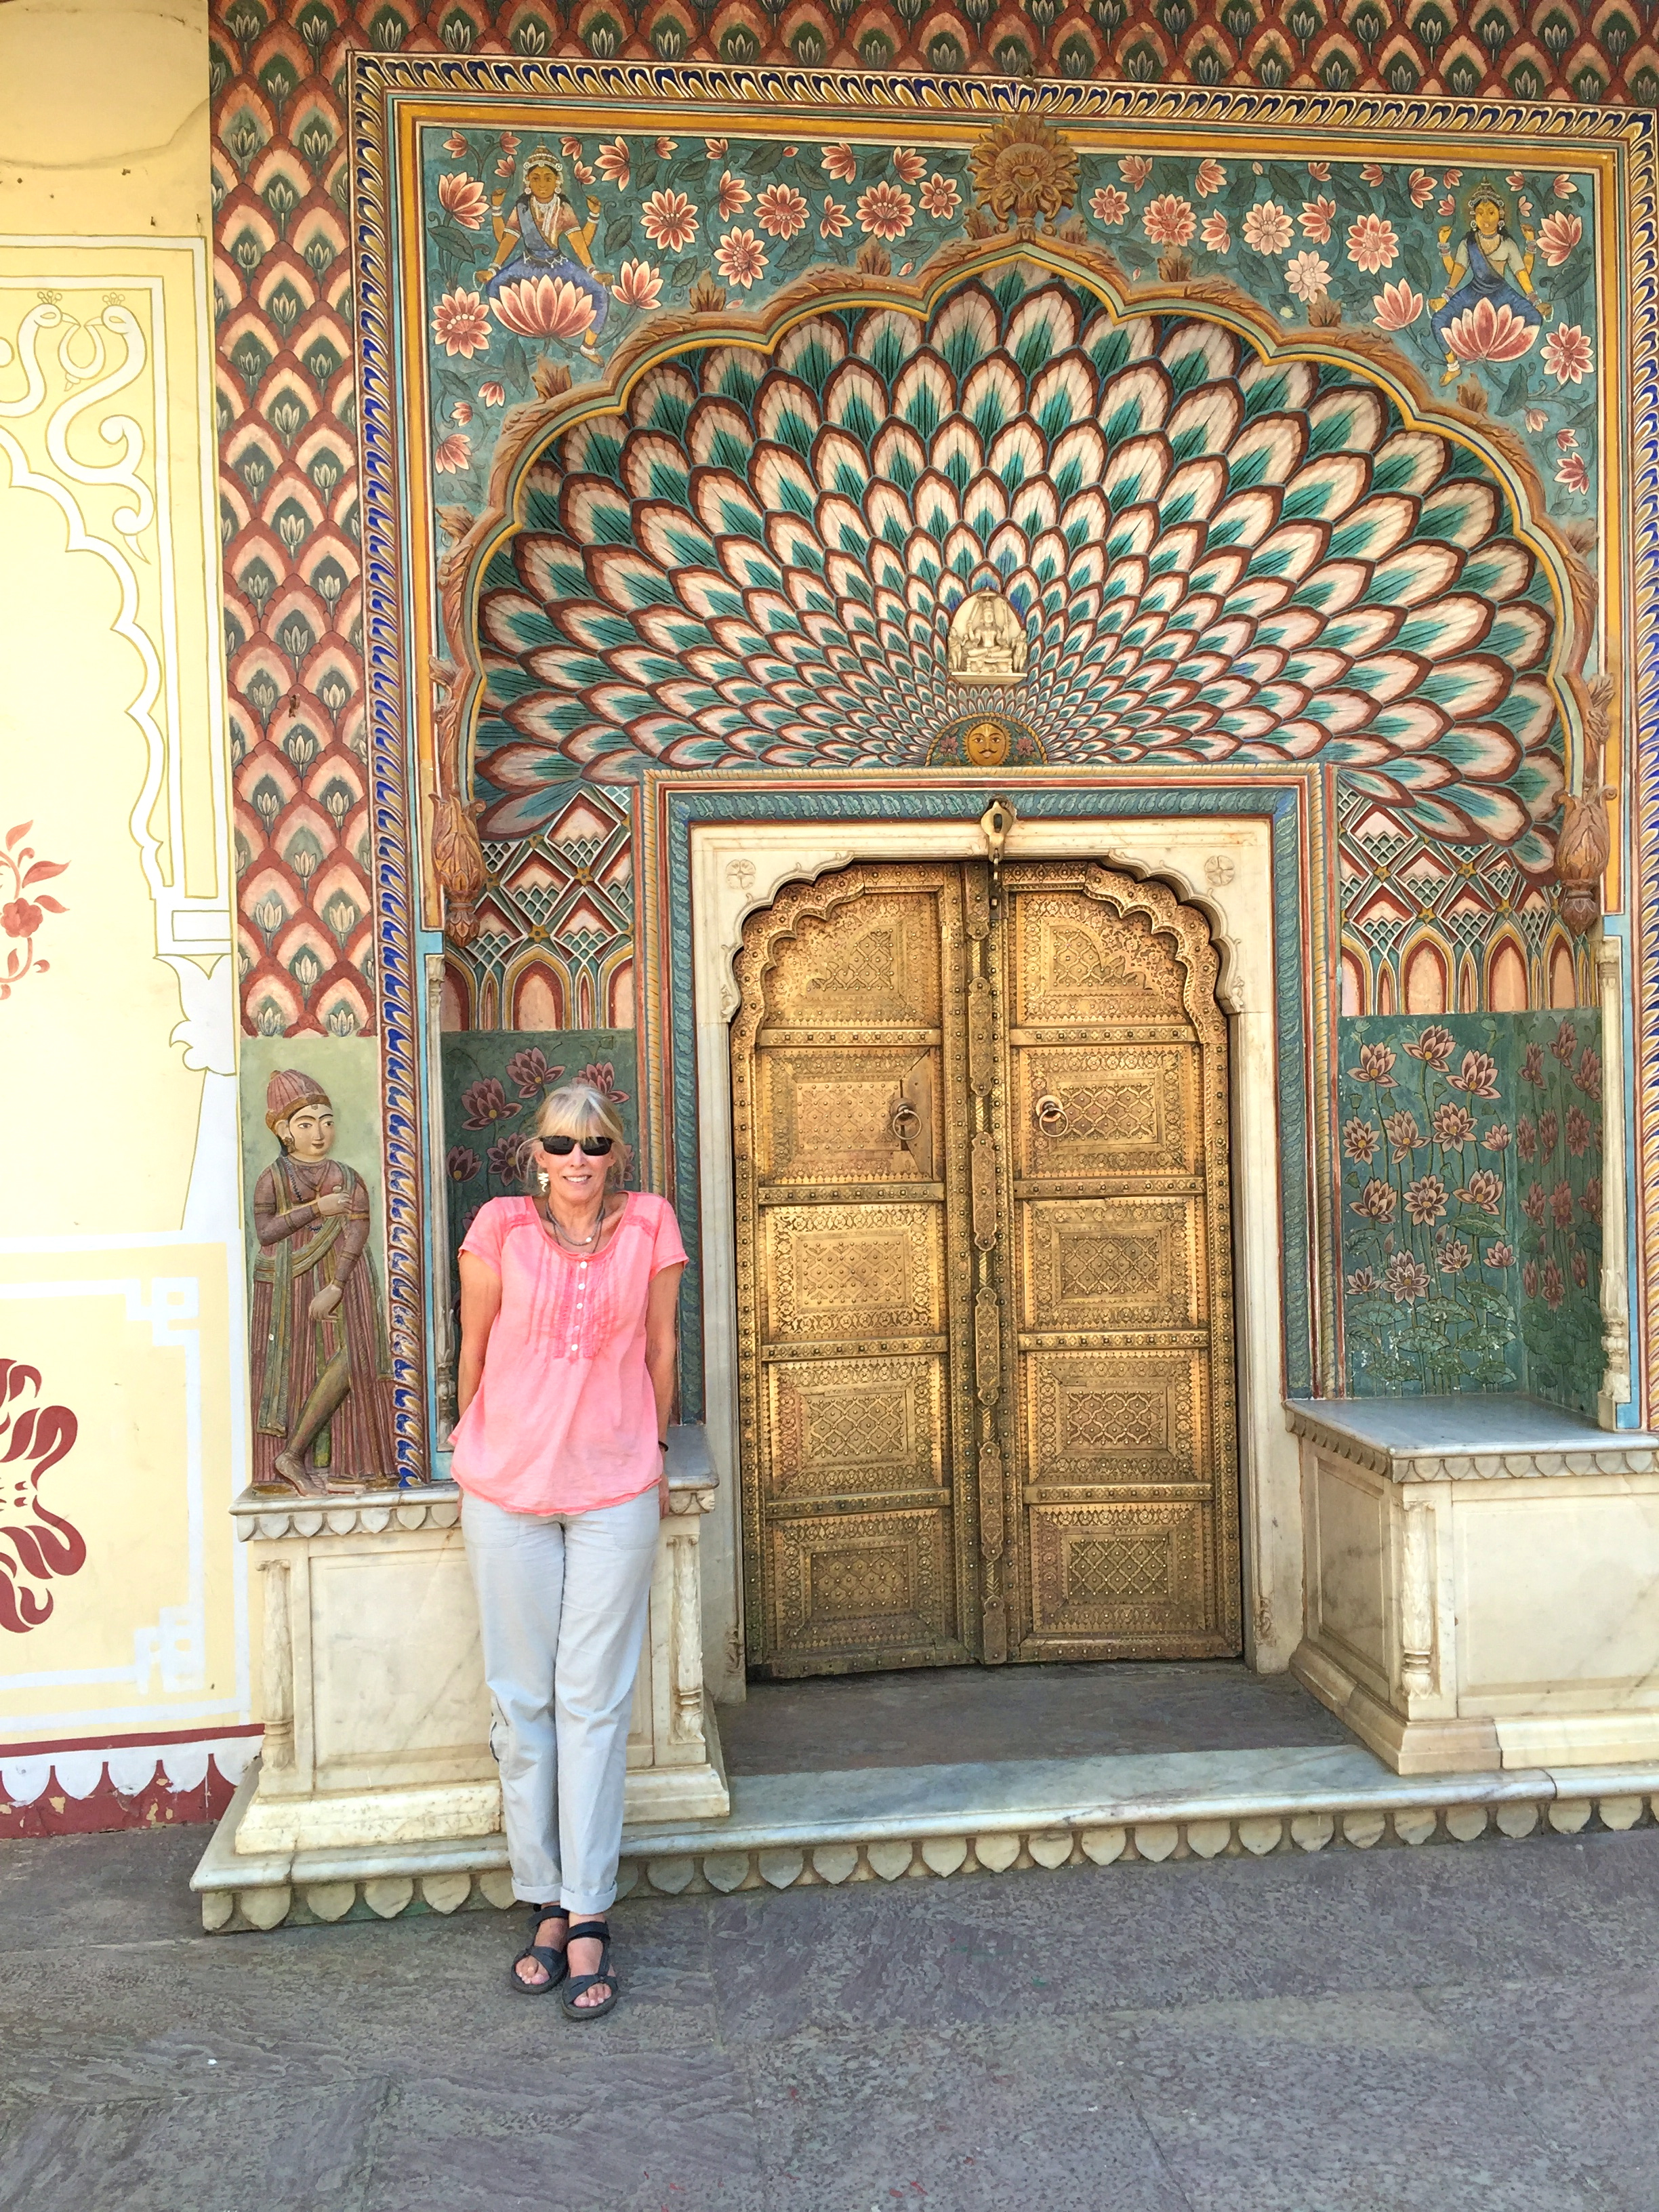 This is me standing in front of some doors from a courtyard at the City Palace of Jaipur.